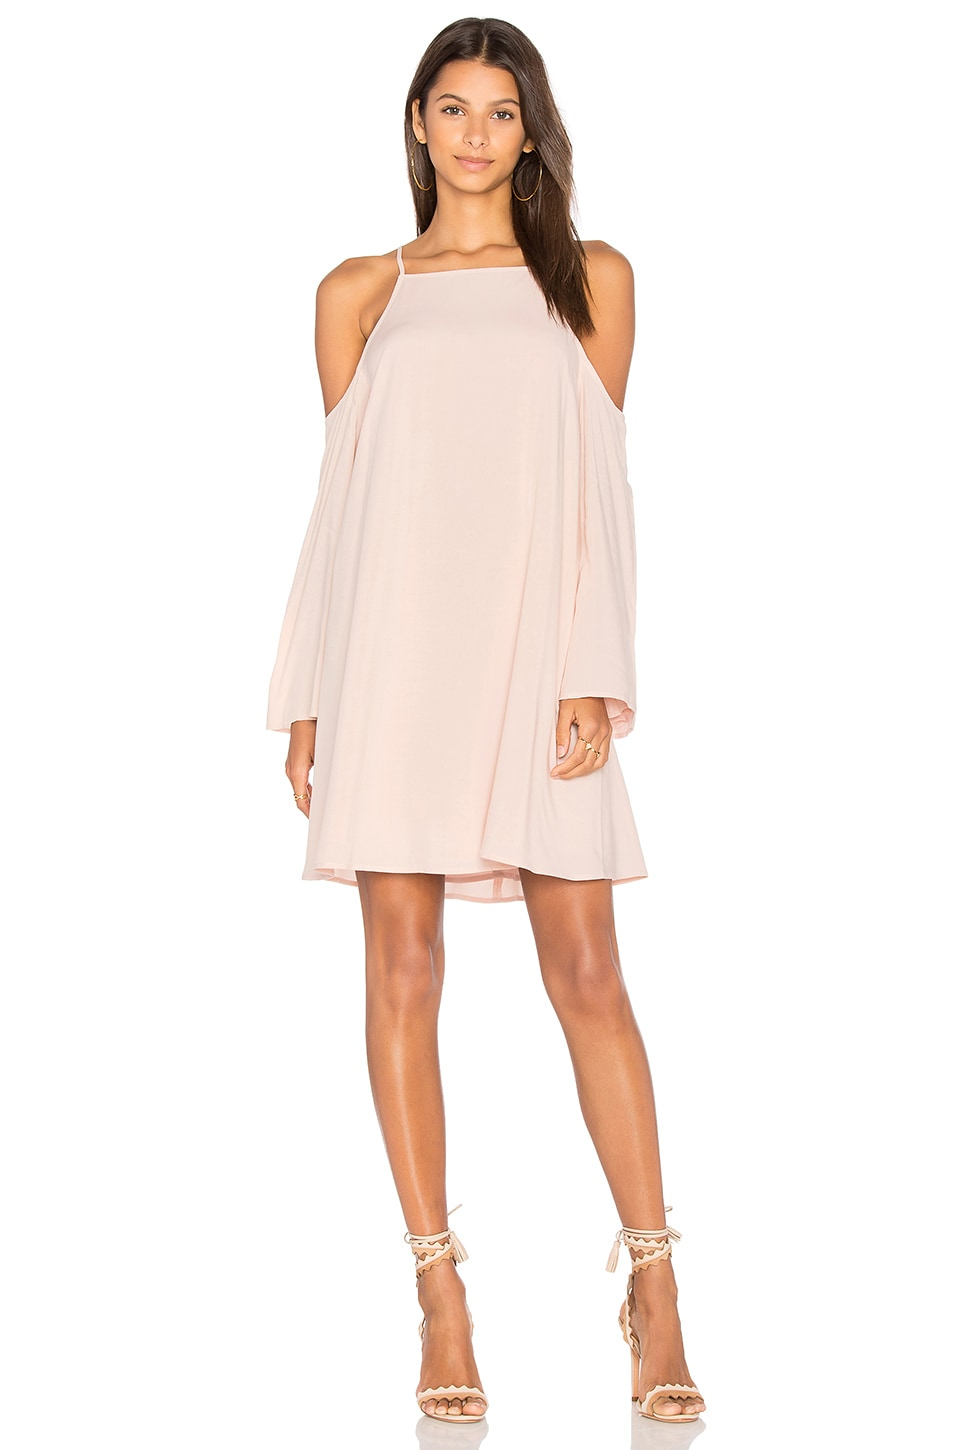 BLAQUE LABEL Exposed Shoulder Dress in Petal Pink